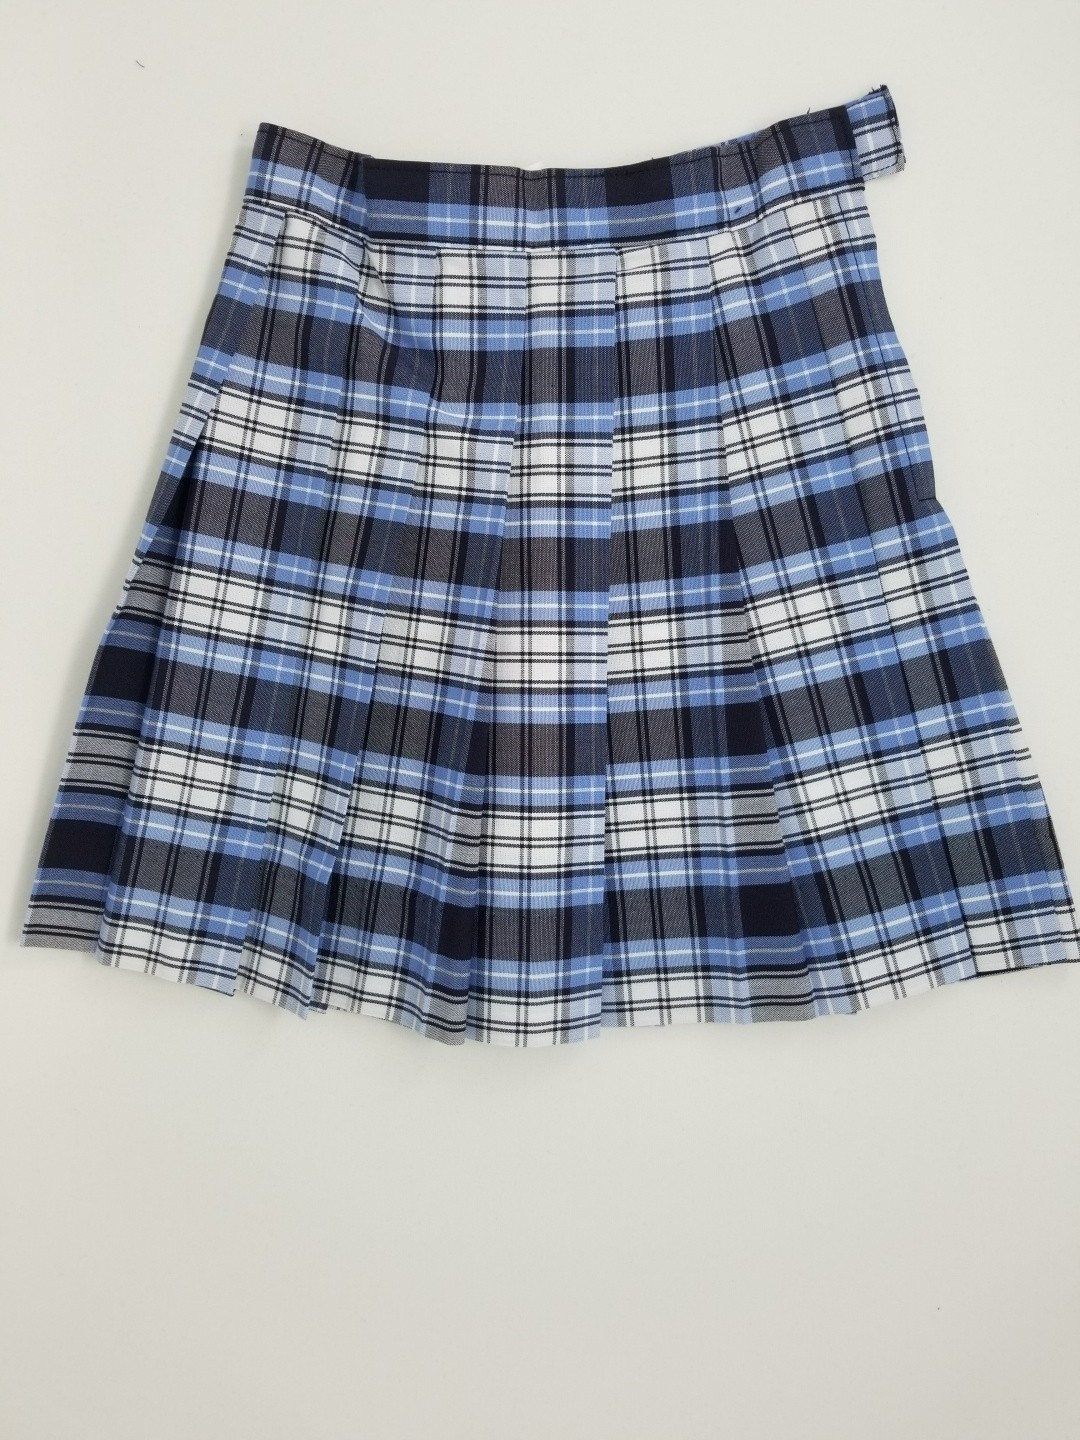 Knife Pleated Skirt- Style 06/16